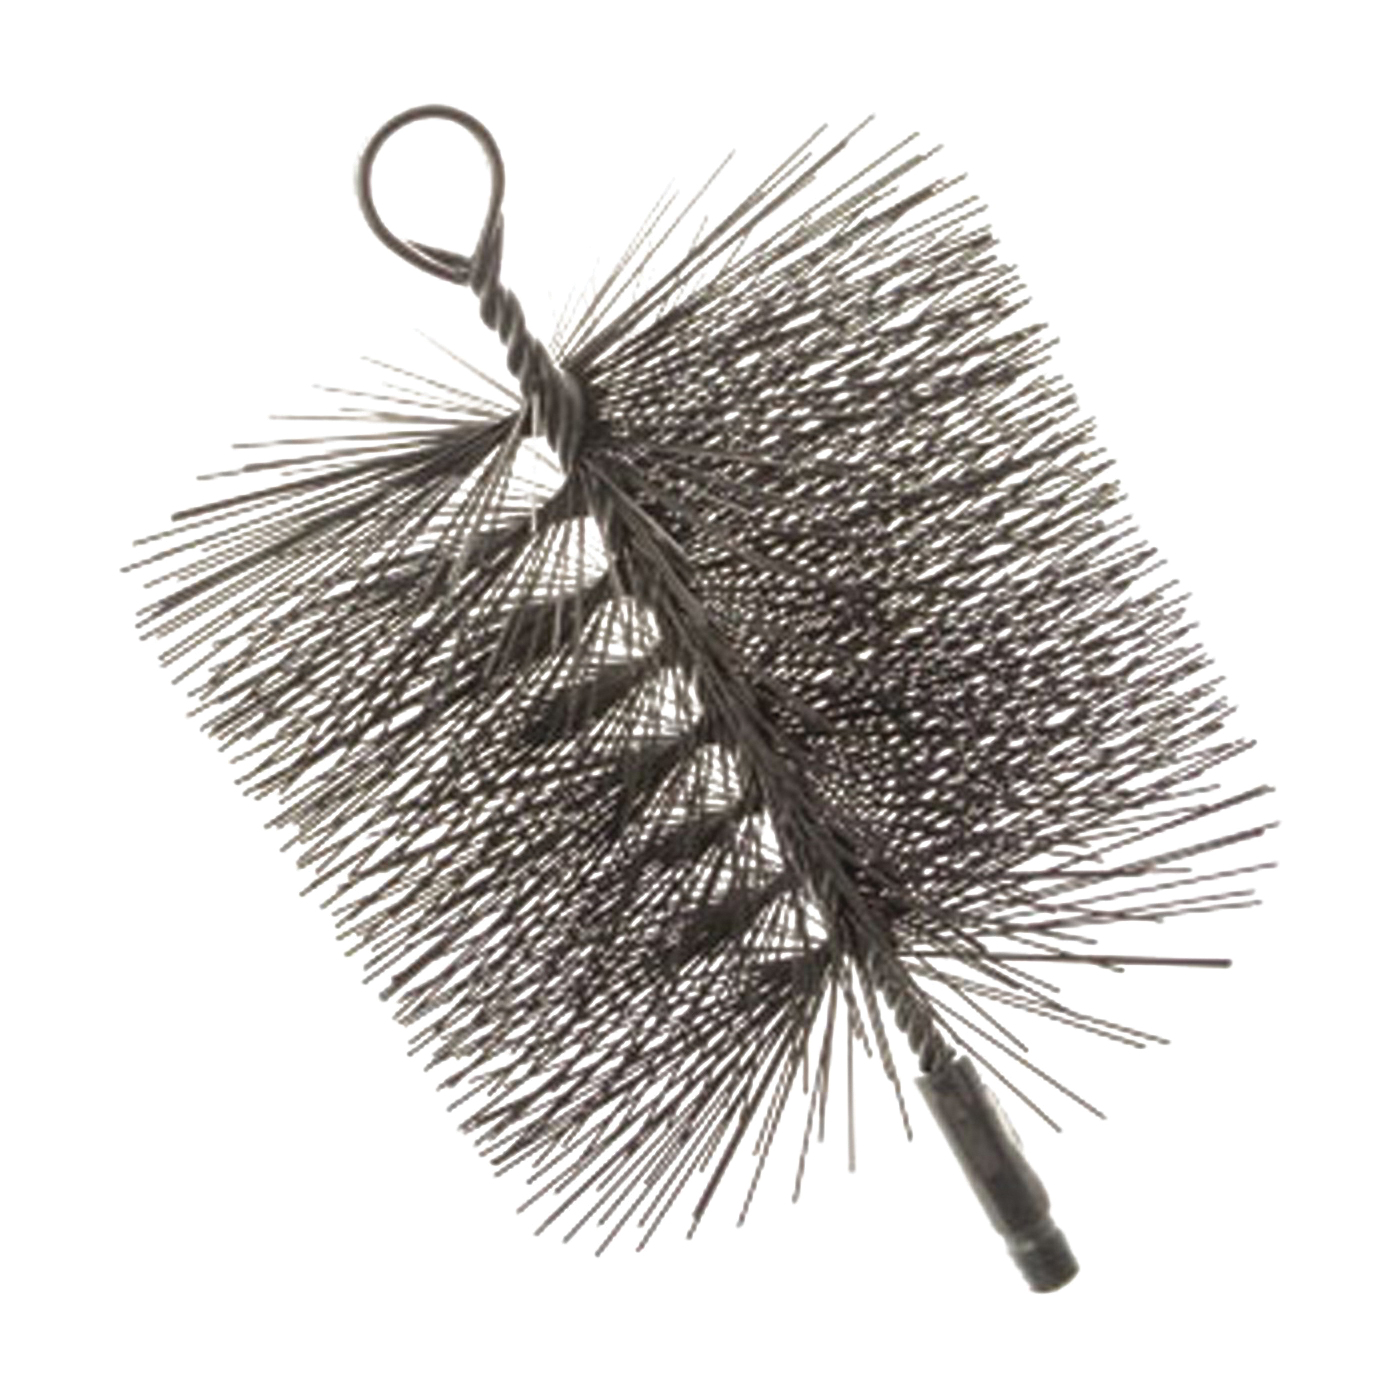 Picture of Imperial BR0115 Round Chimney Brush, 7 in Dia Brush